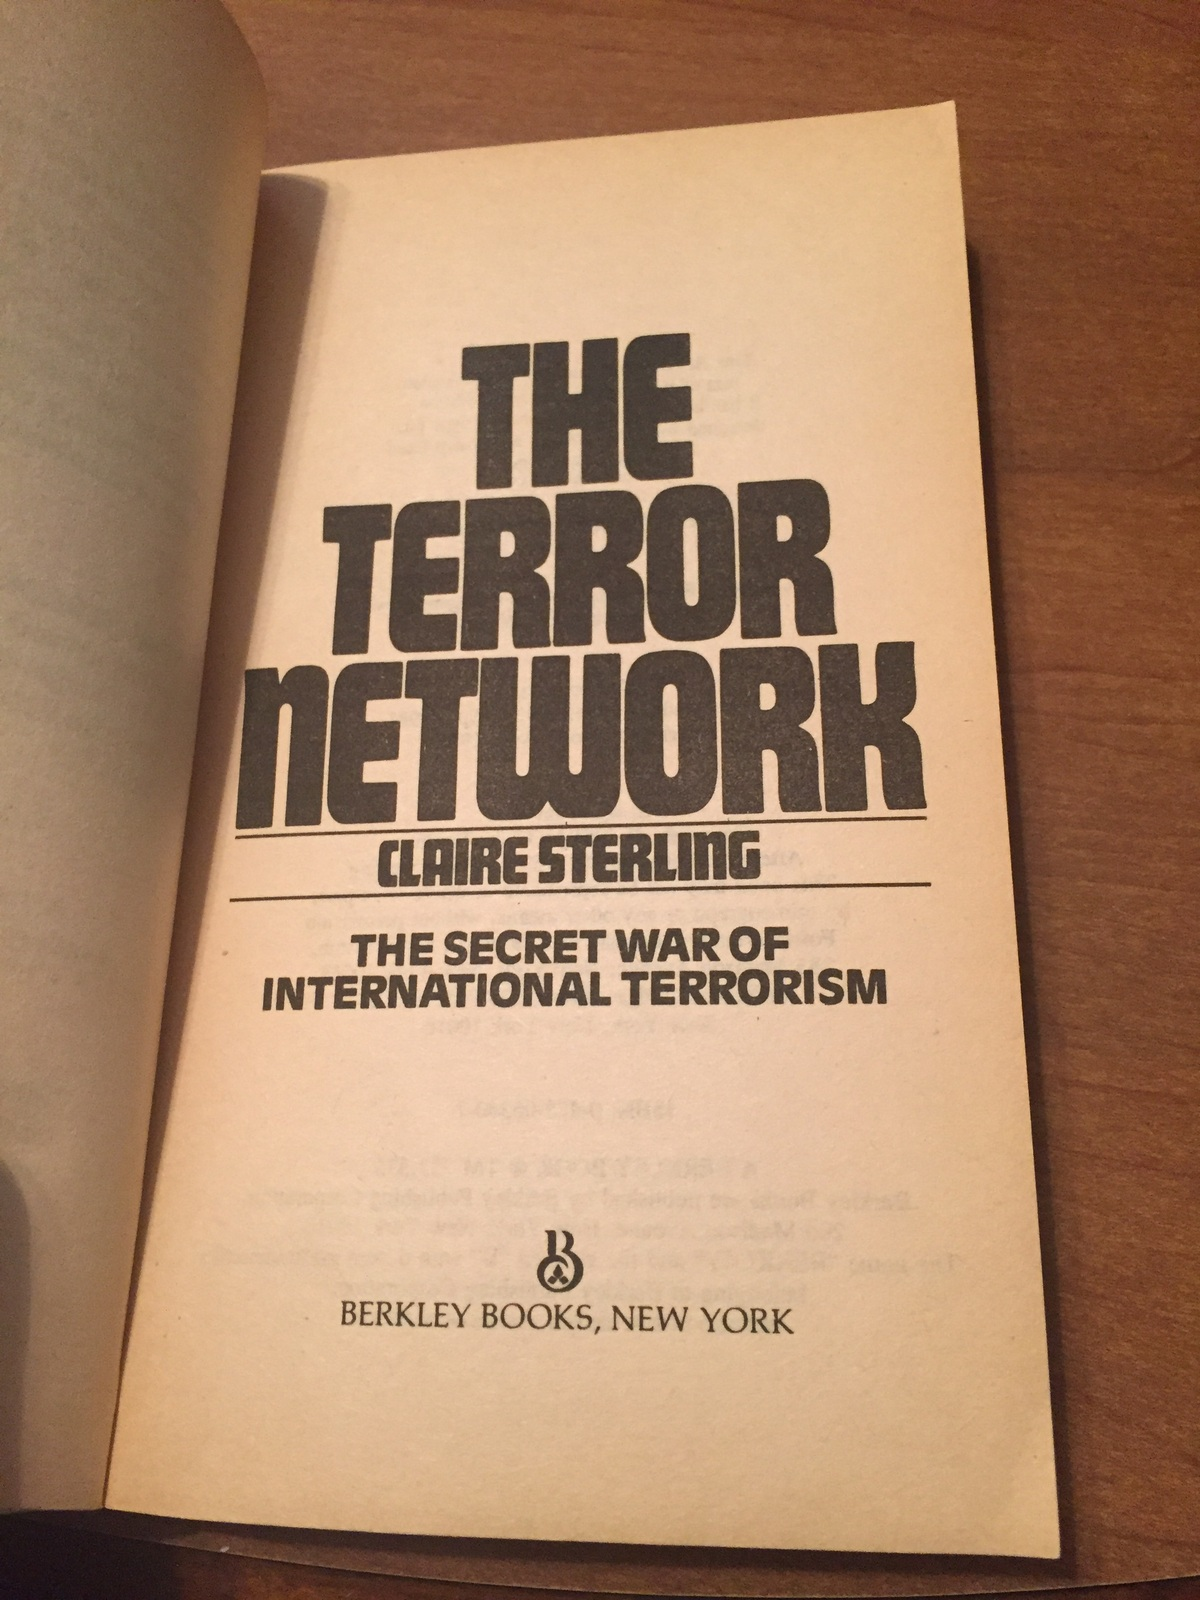 The terror network by Claire Sterling sec938